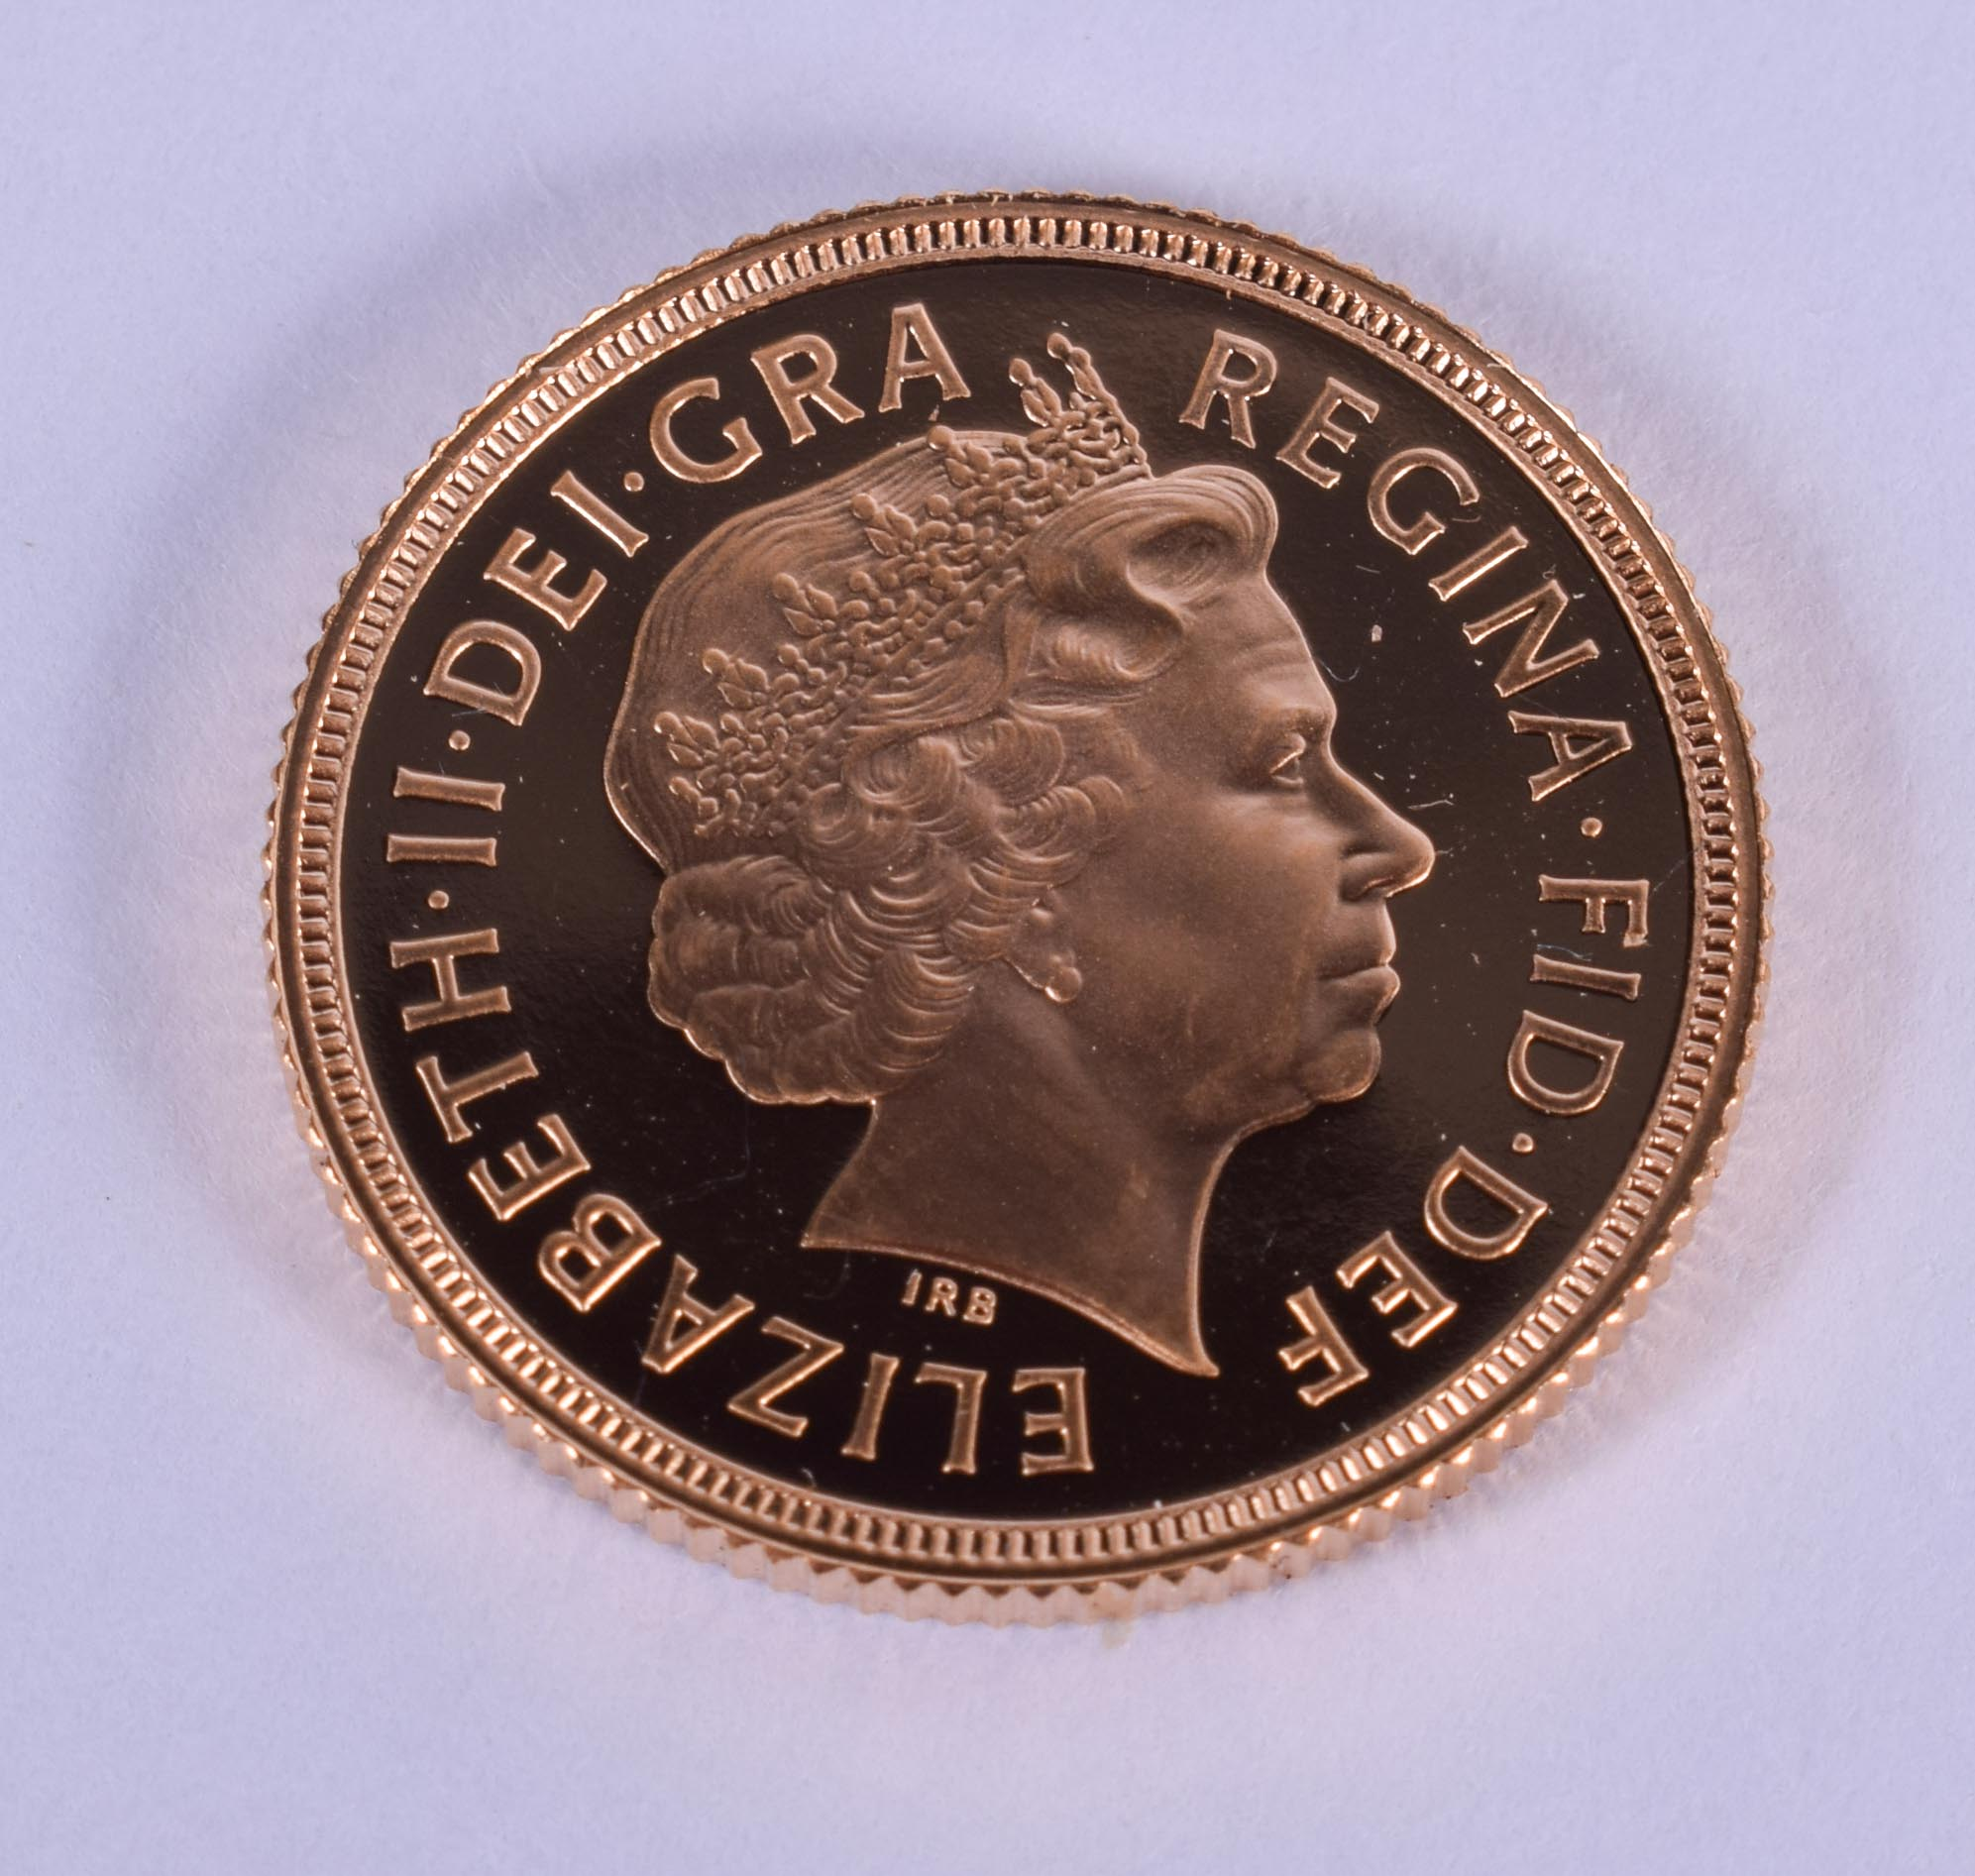 A BOXED 1998 PROOF SOVEREIGN. 2 cm diameter. - Image 2 of 3